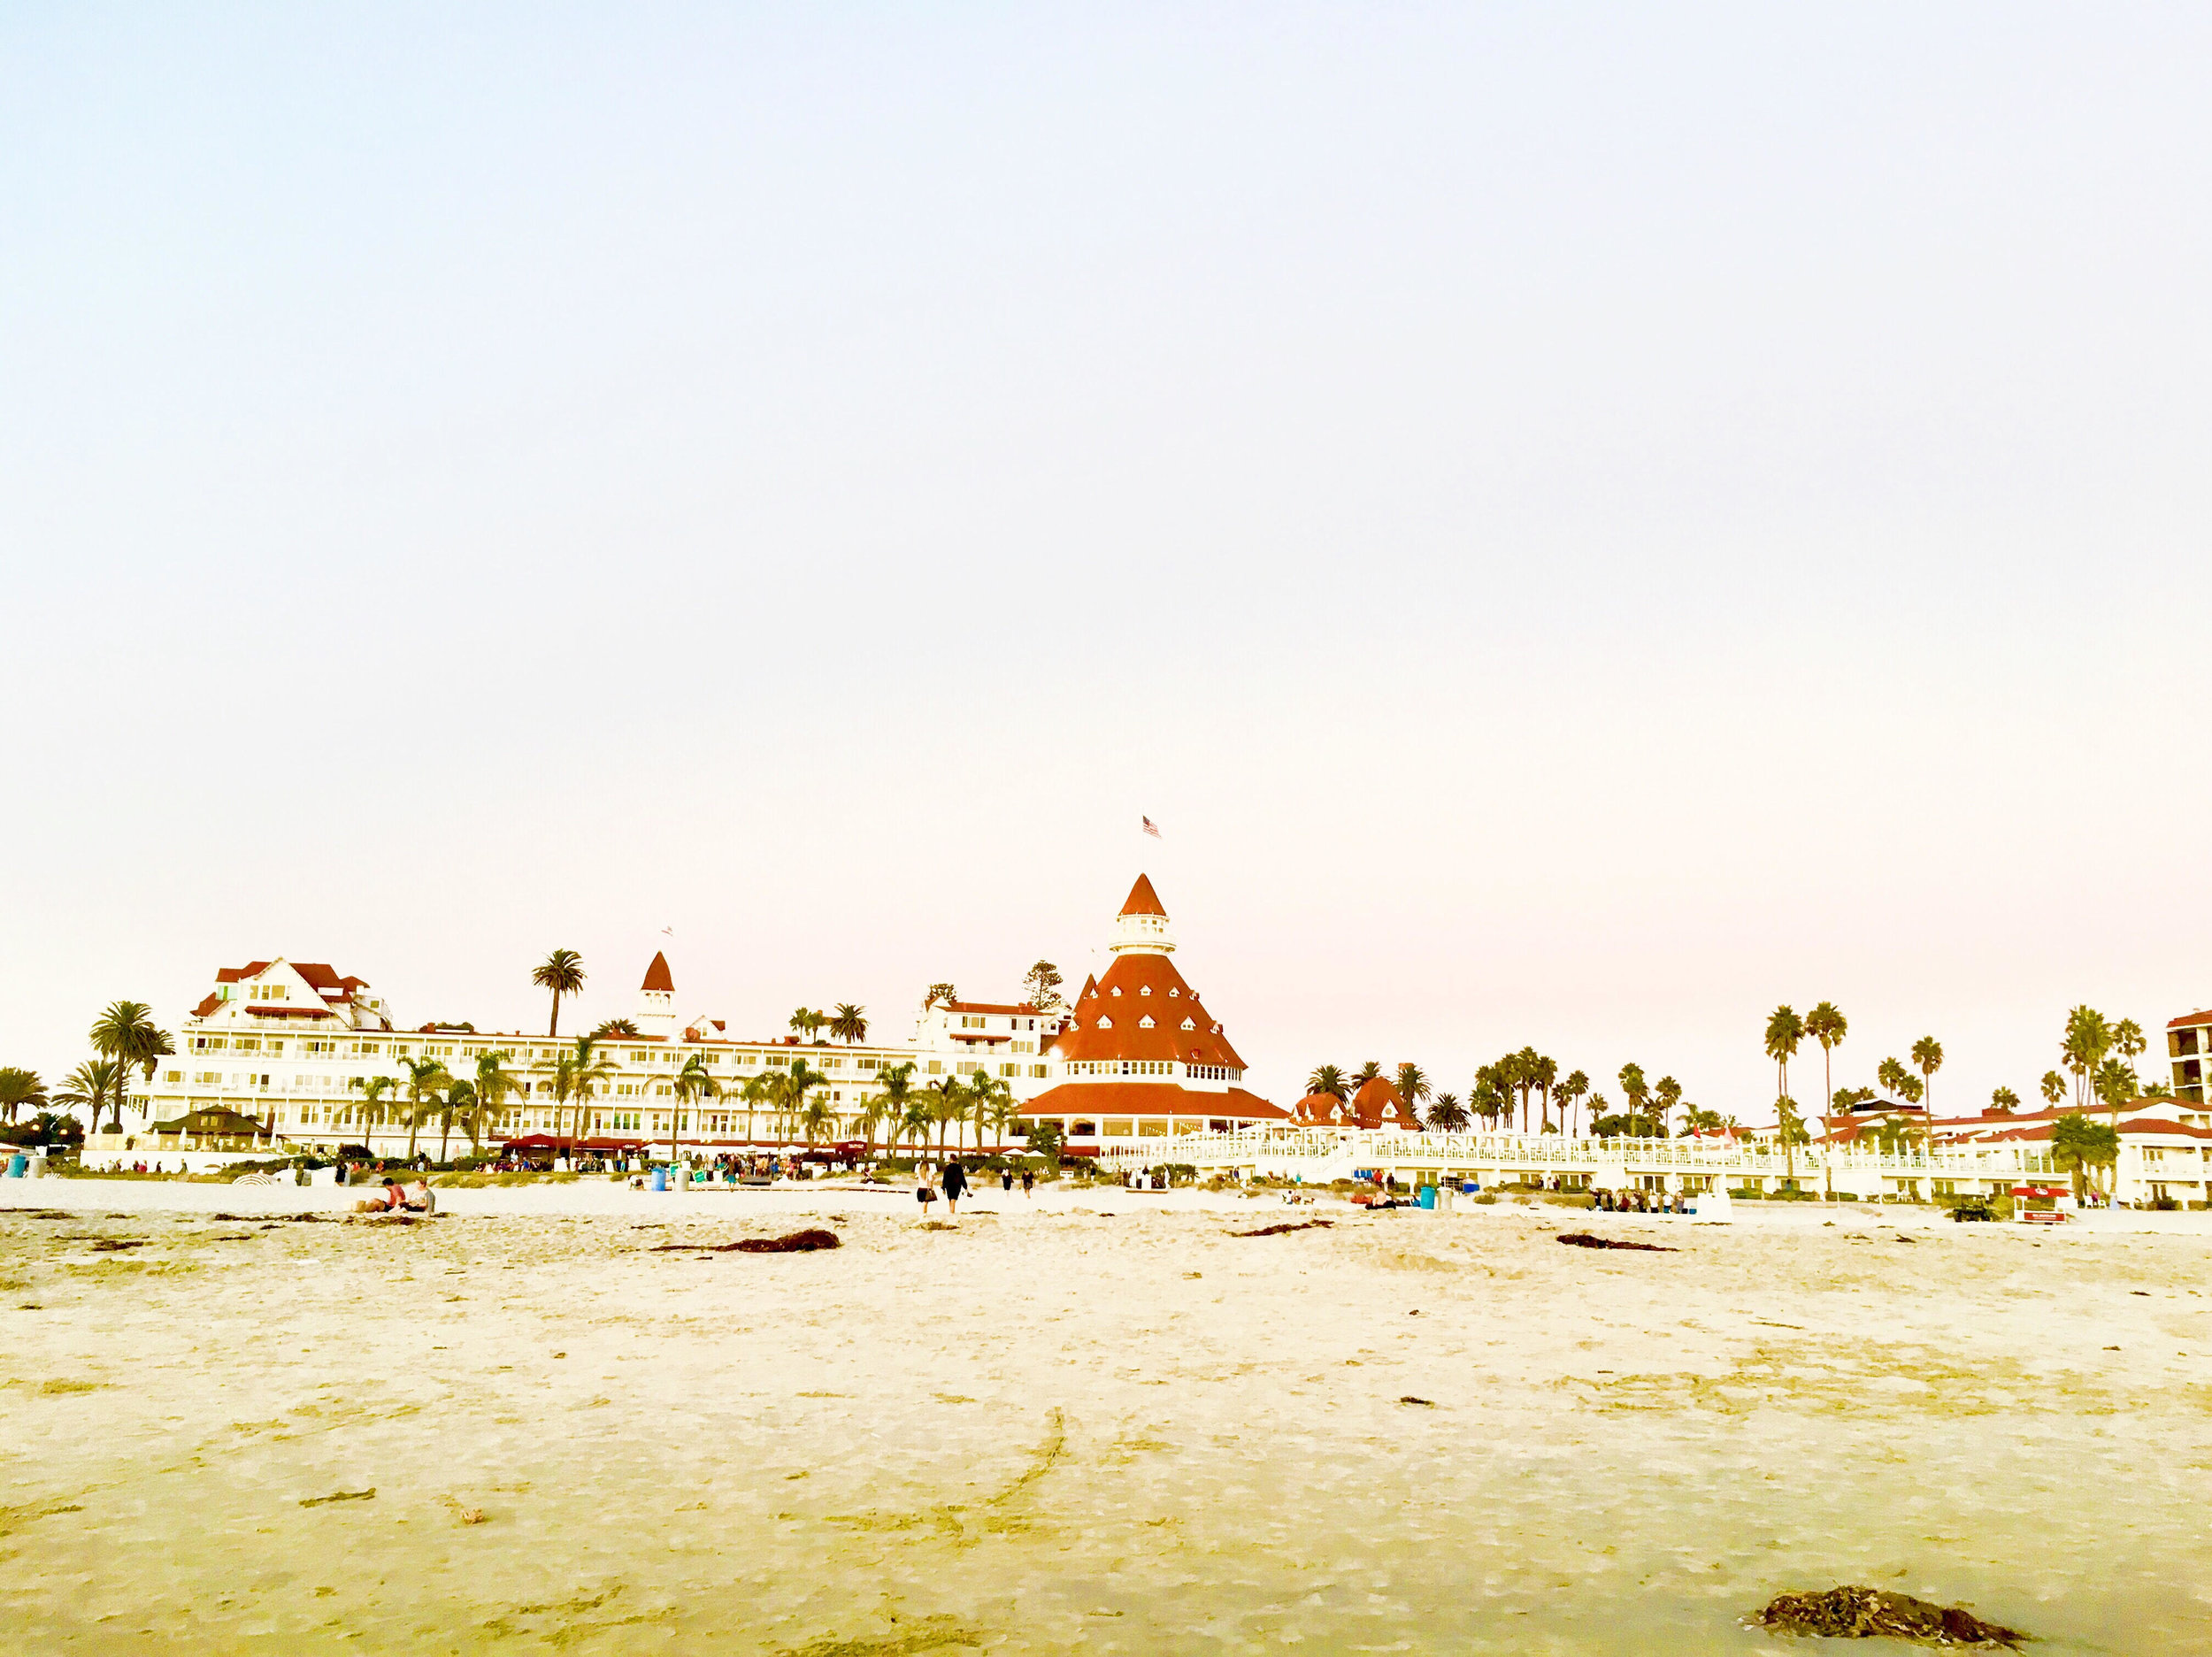 Photo from the Hotel Del Coronado taken earlier this year.